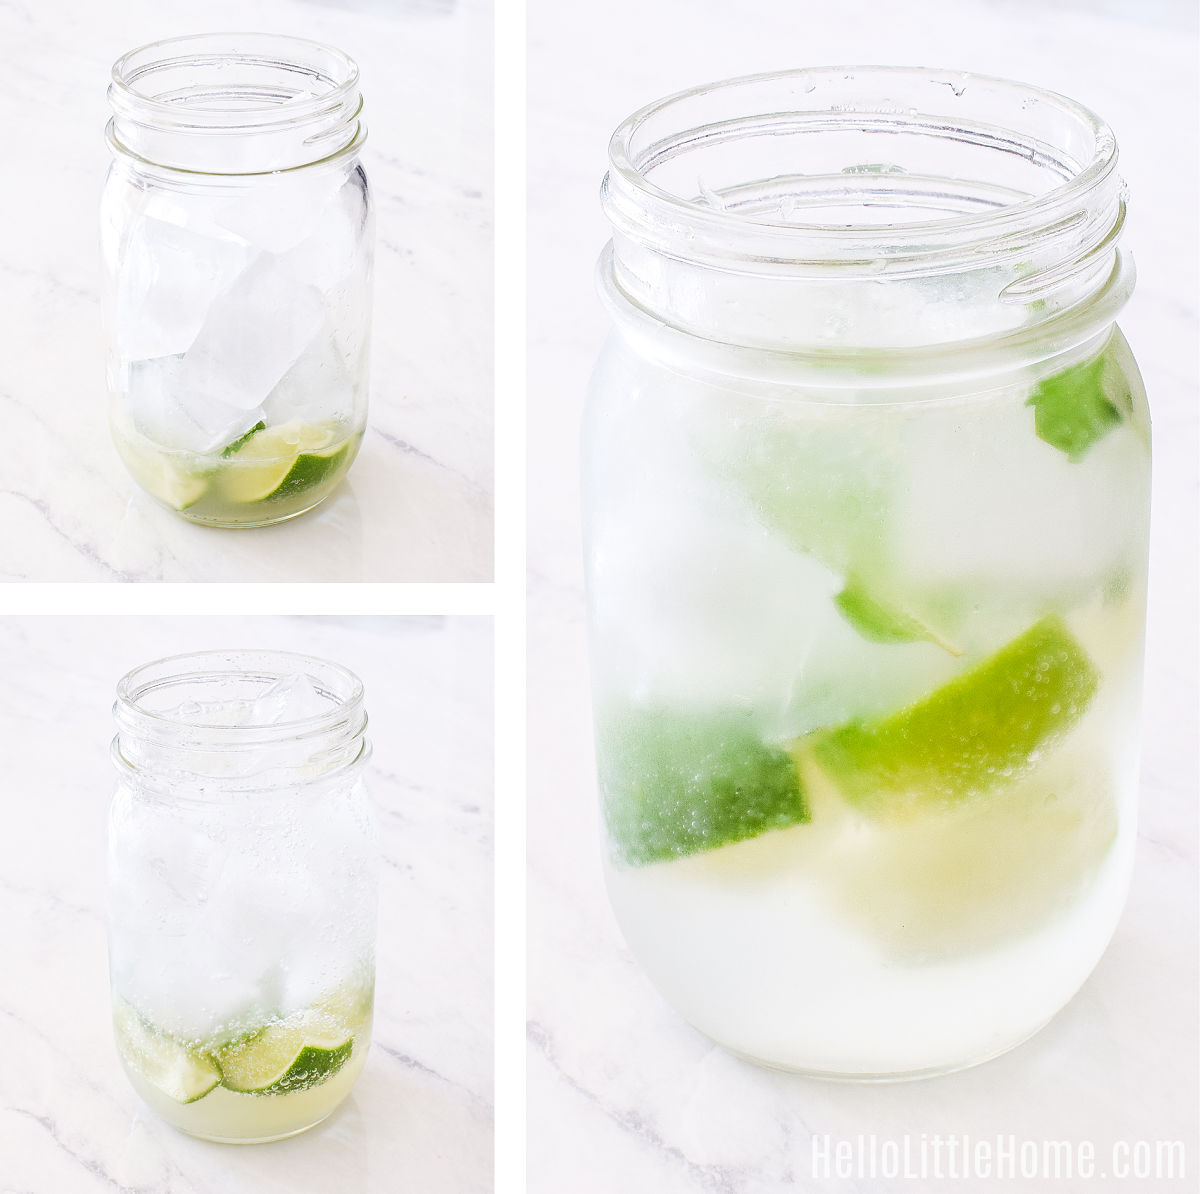 A photo collage showing a glass filled with ice, and then with club soda added (before and after mixing).